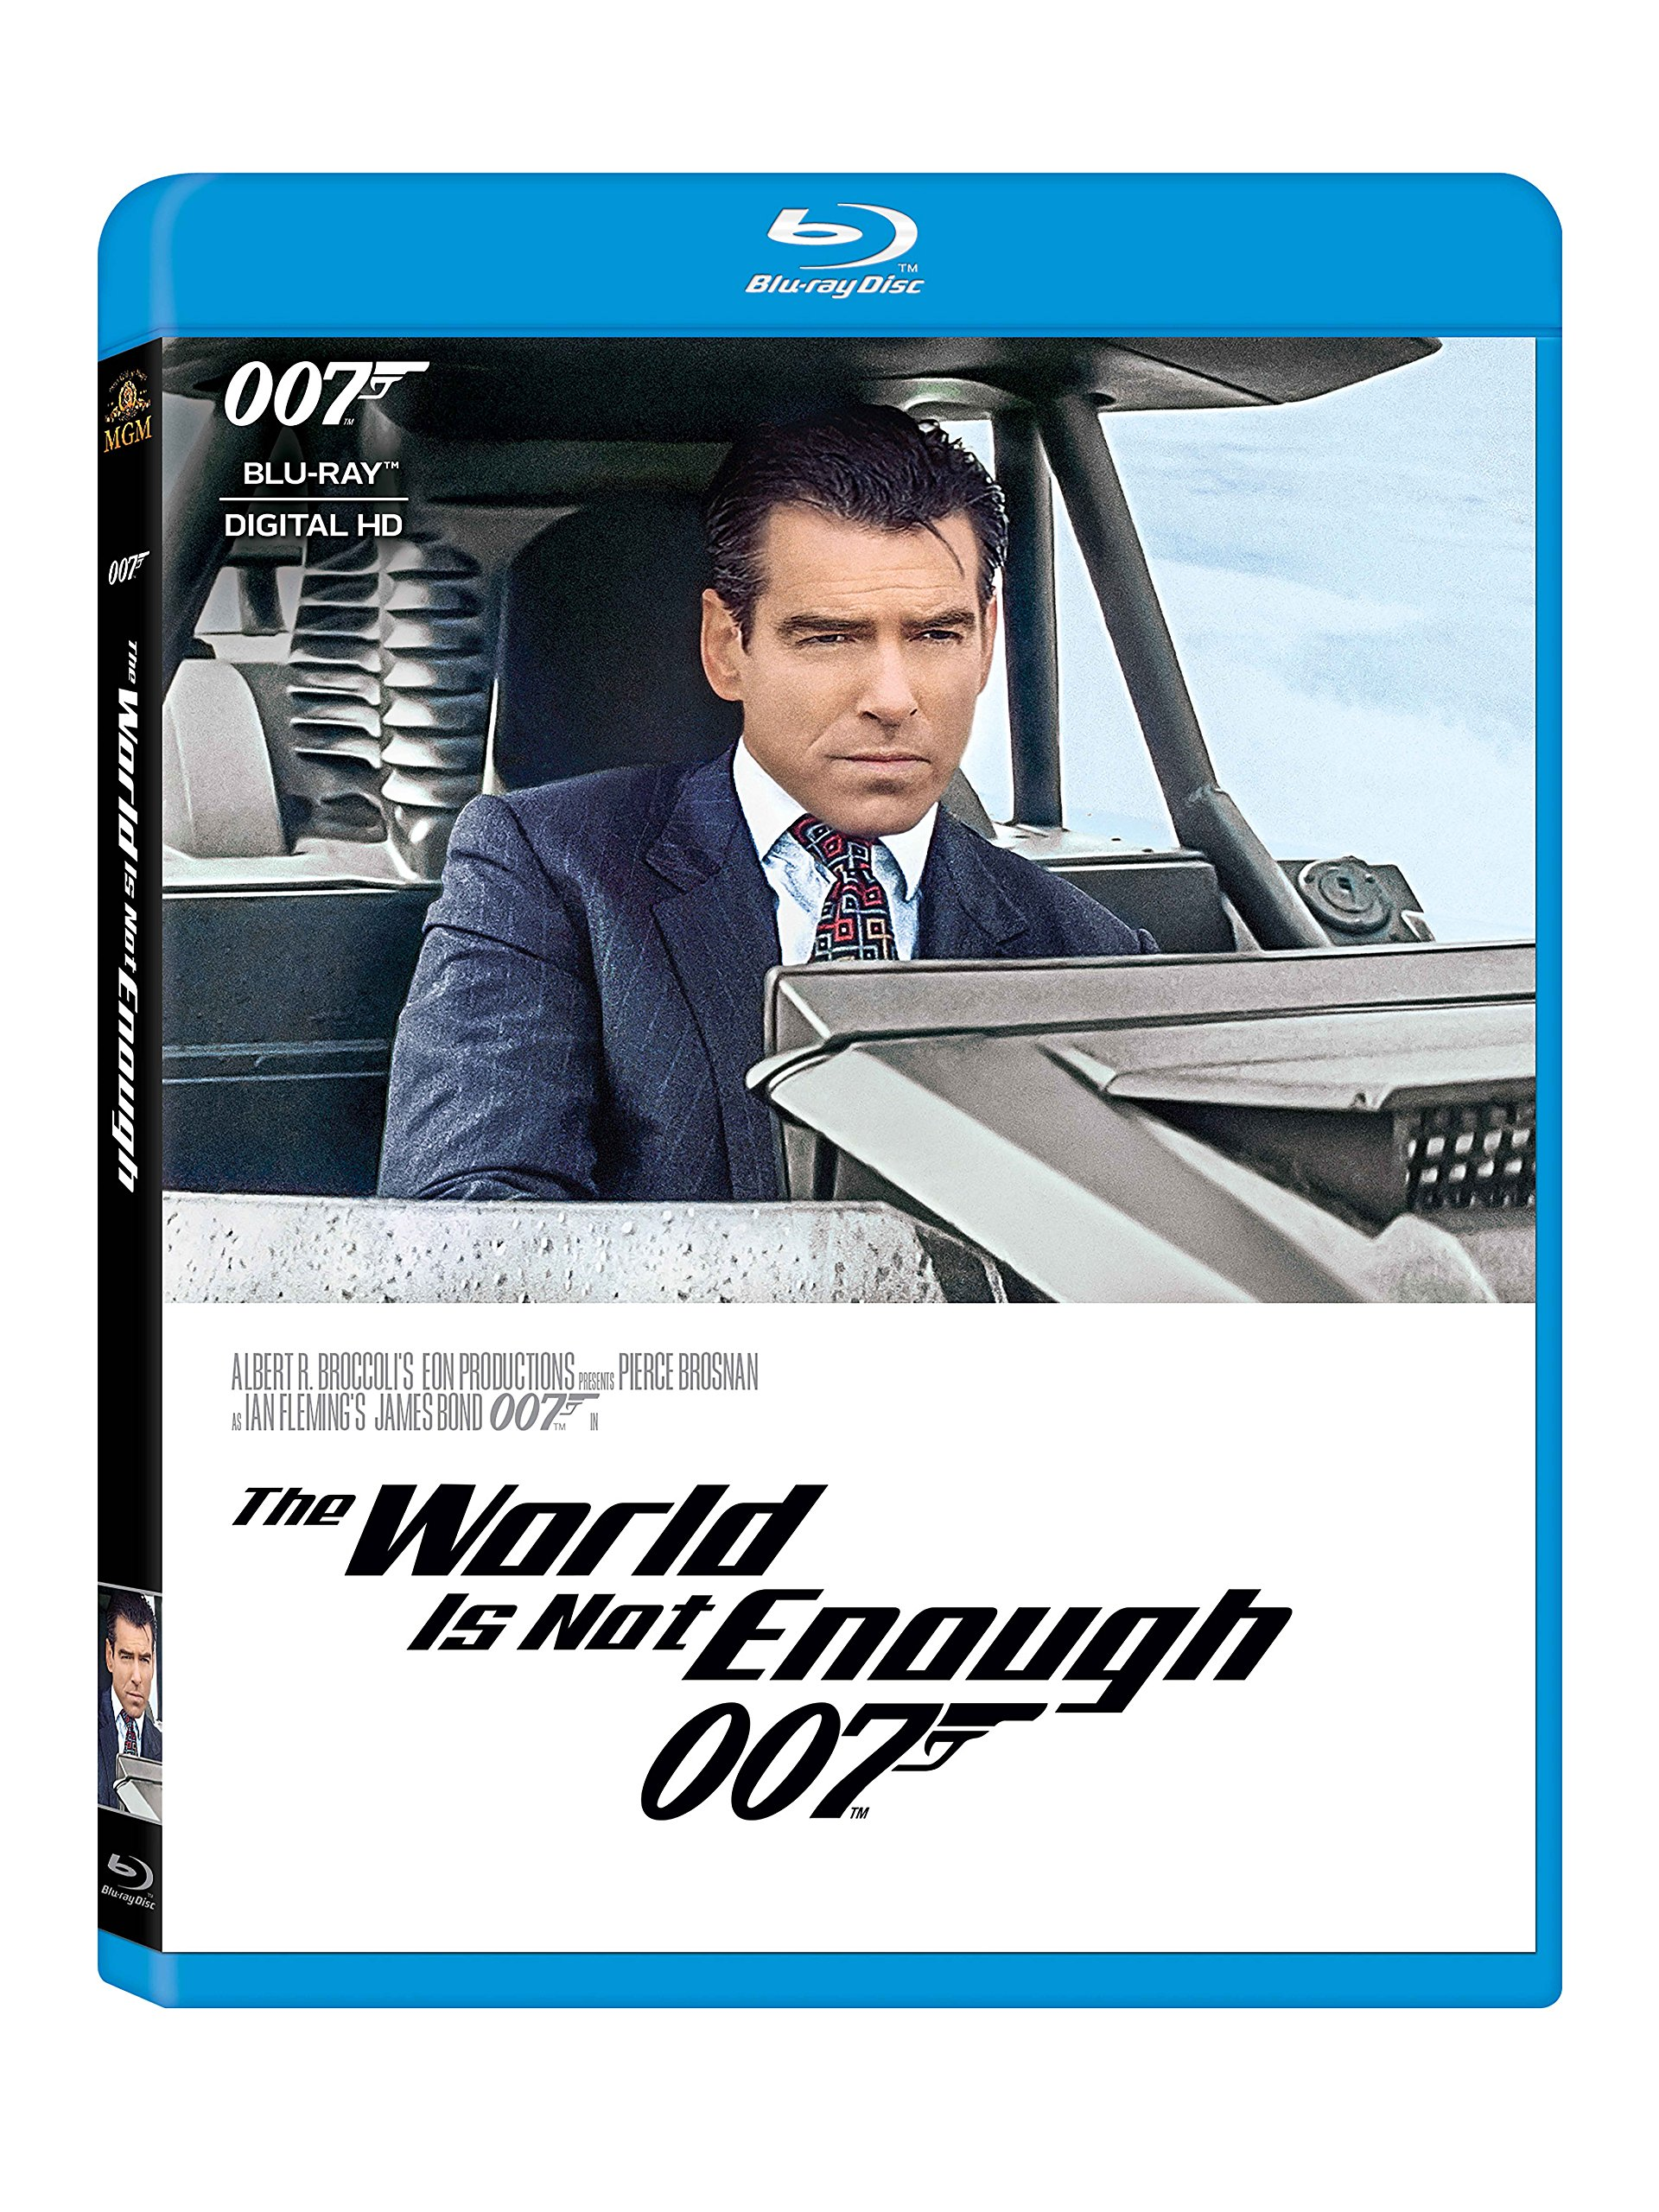 World Is Not Enough, The Blu-ray